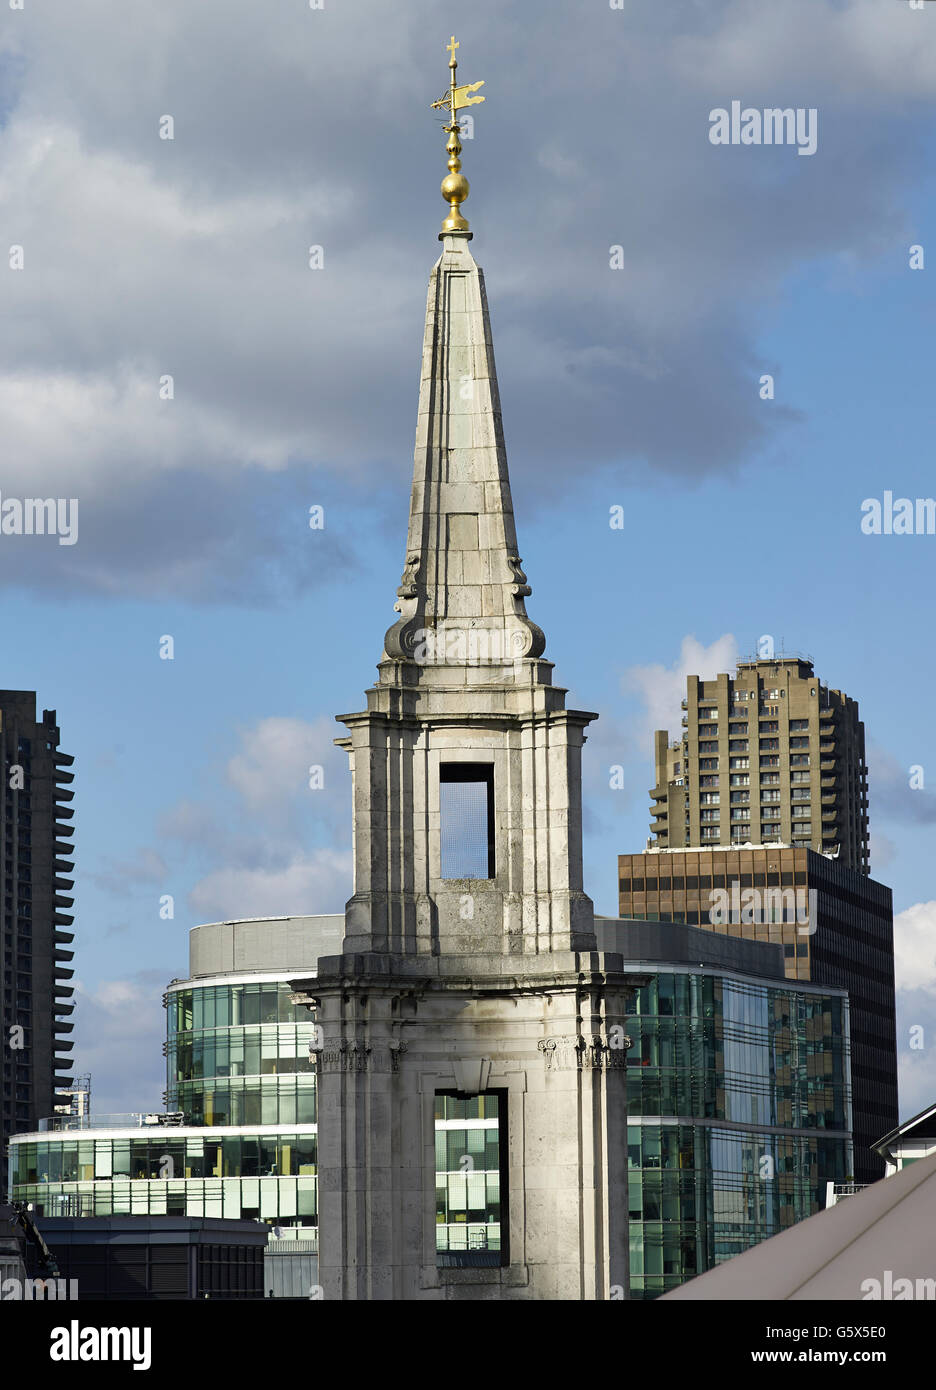 St Vedast Alias Foster, church in the City of London; Baroque spire, going from concave to convex and back to concave. - Stock Image